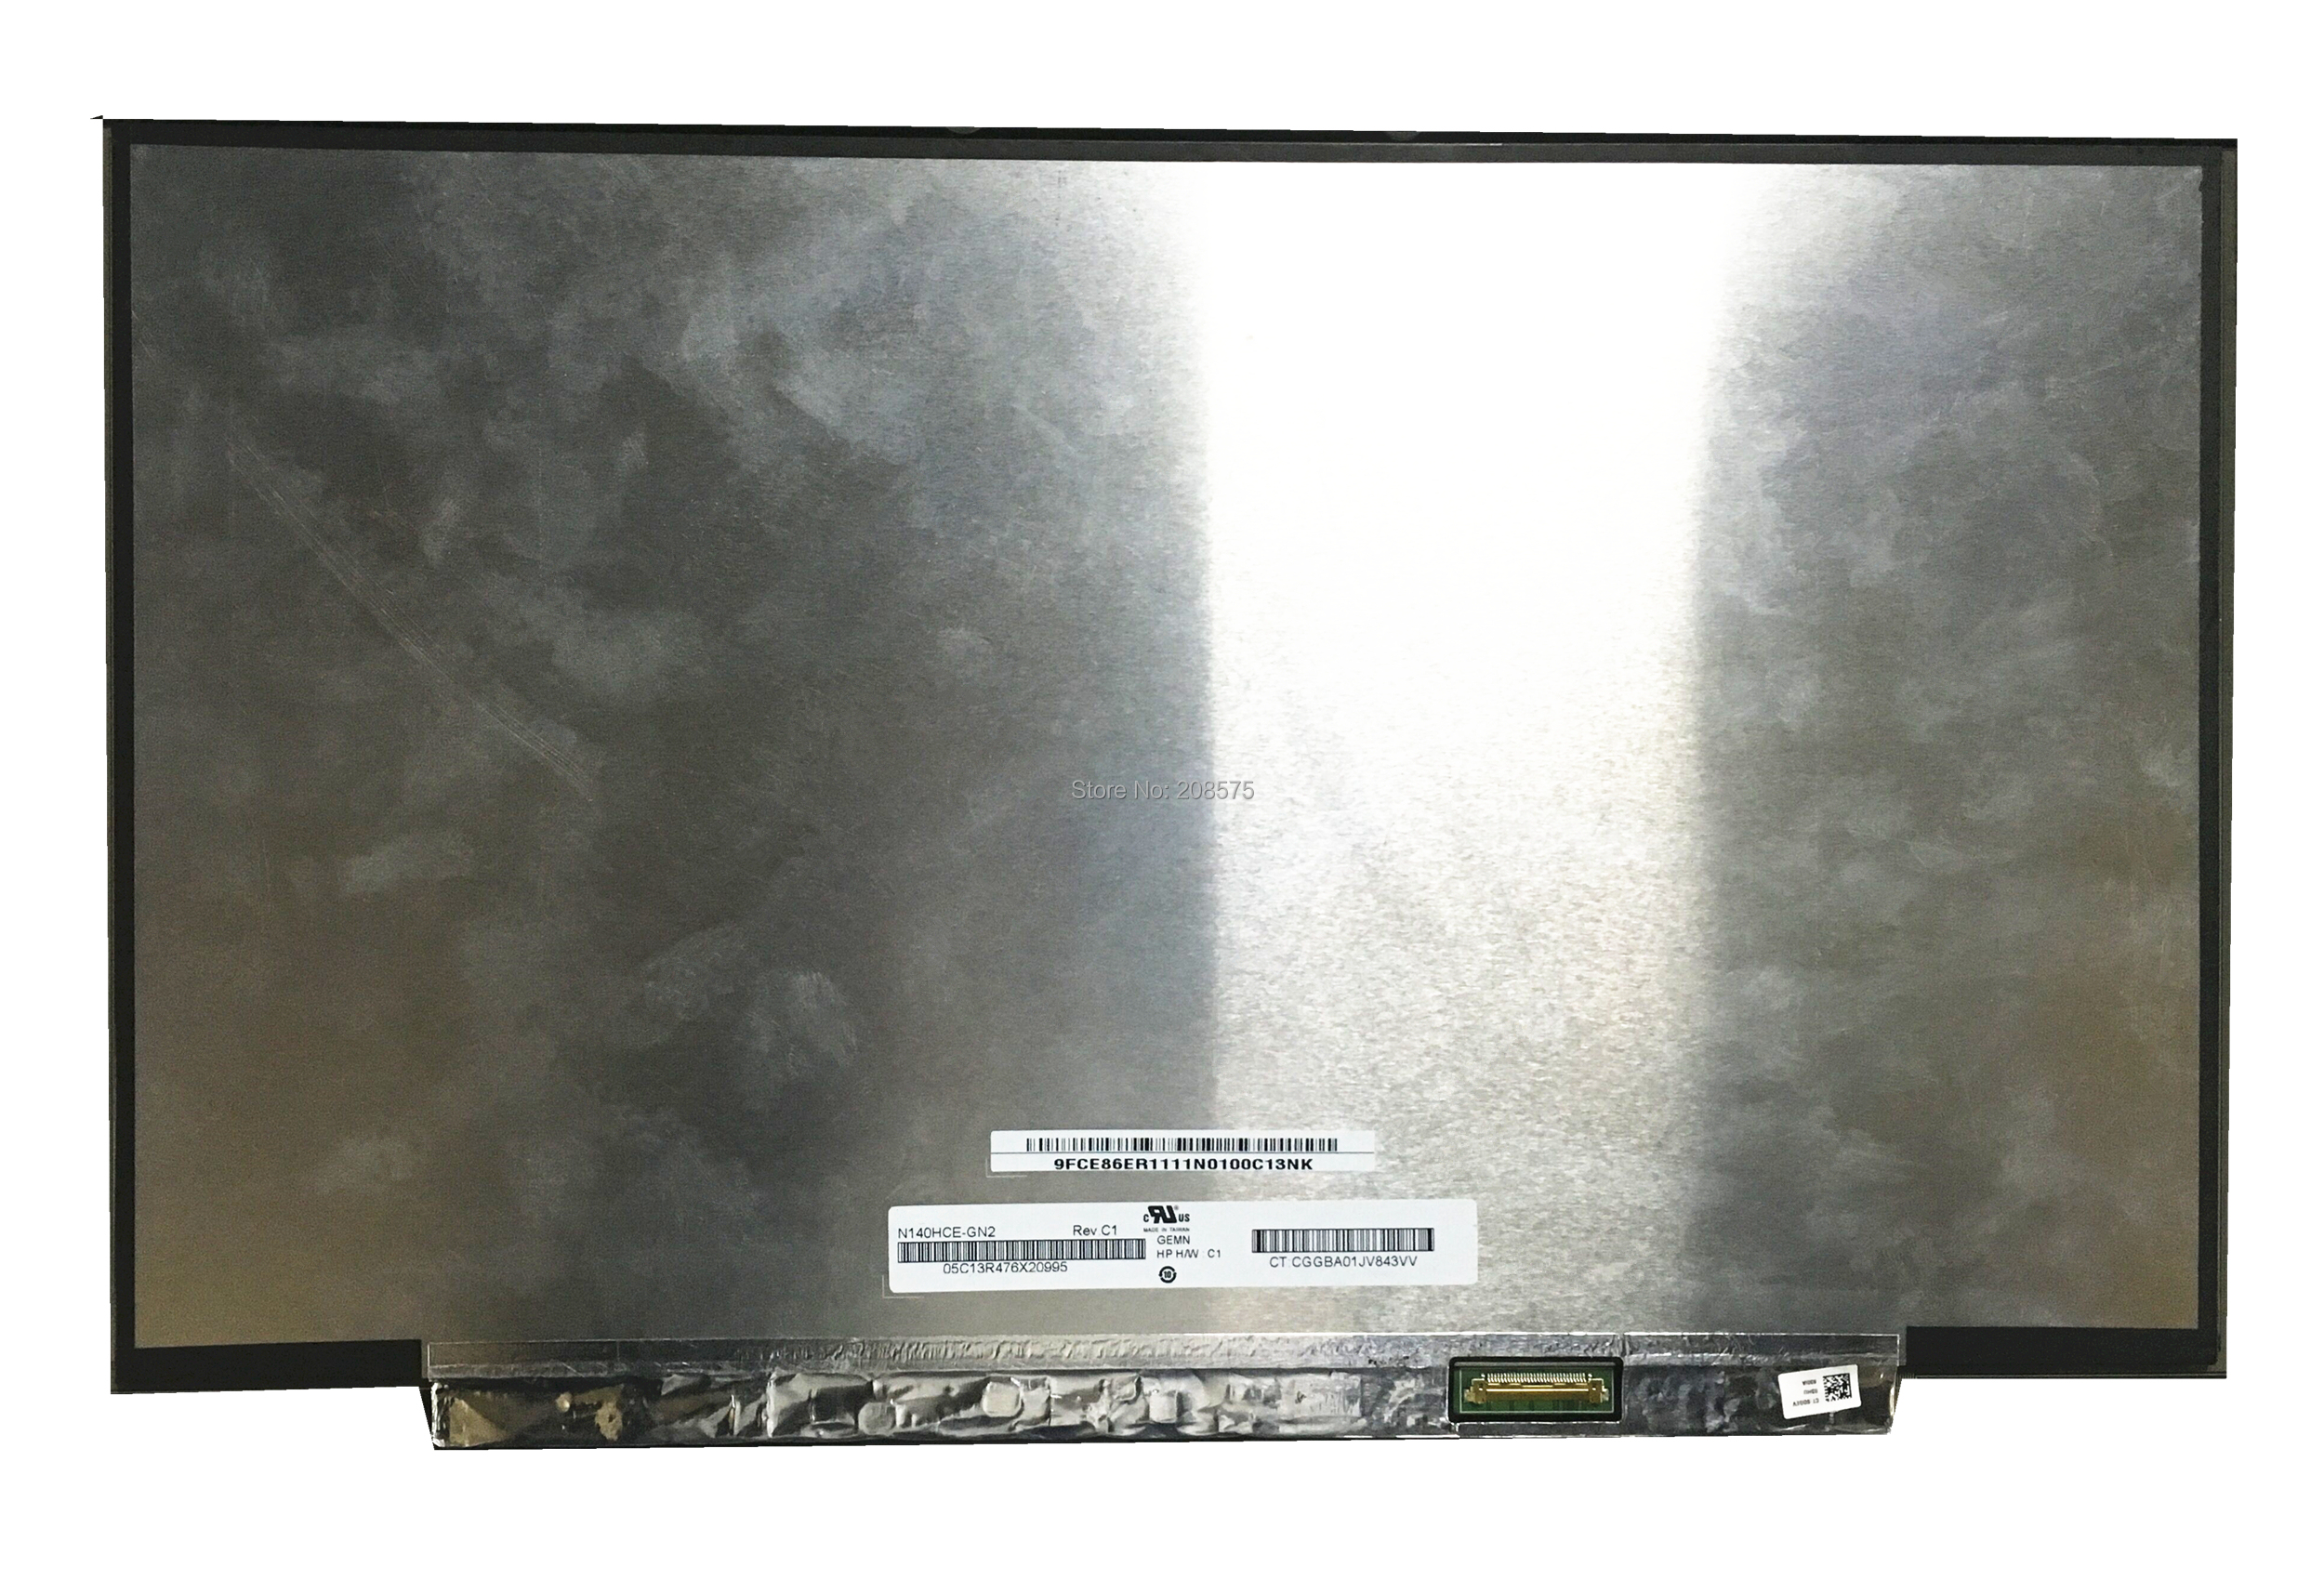 Free shipping 14.0LCD Screen N140HCE-GN2 N140HCE GN2 Laptop Lcd Screen 1920*1080 EDP 30 Pins 72% NTSC Display free shipping 10pcs cm601 chip lcd screen